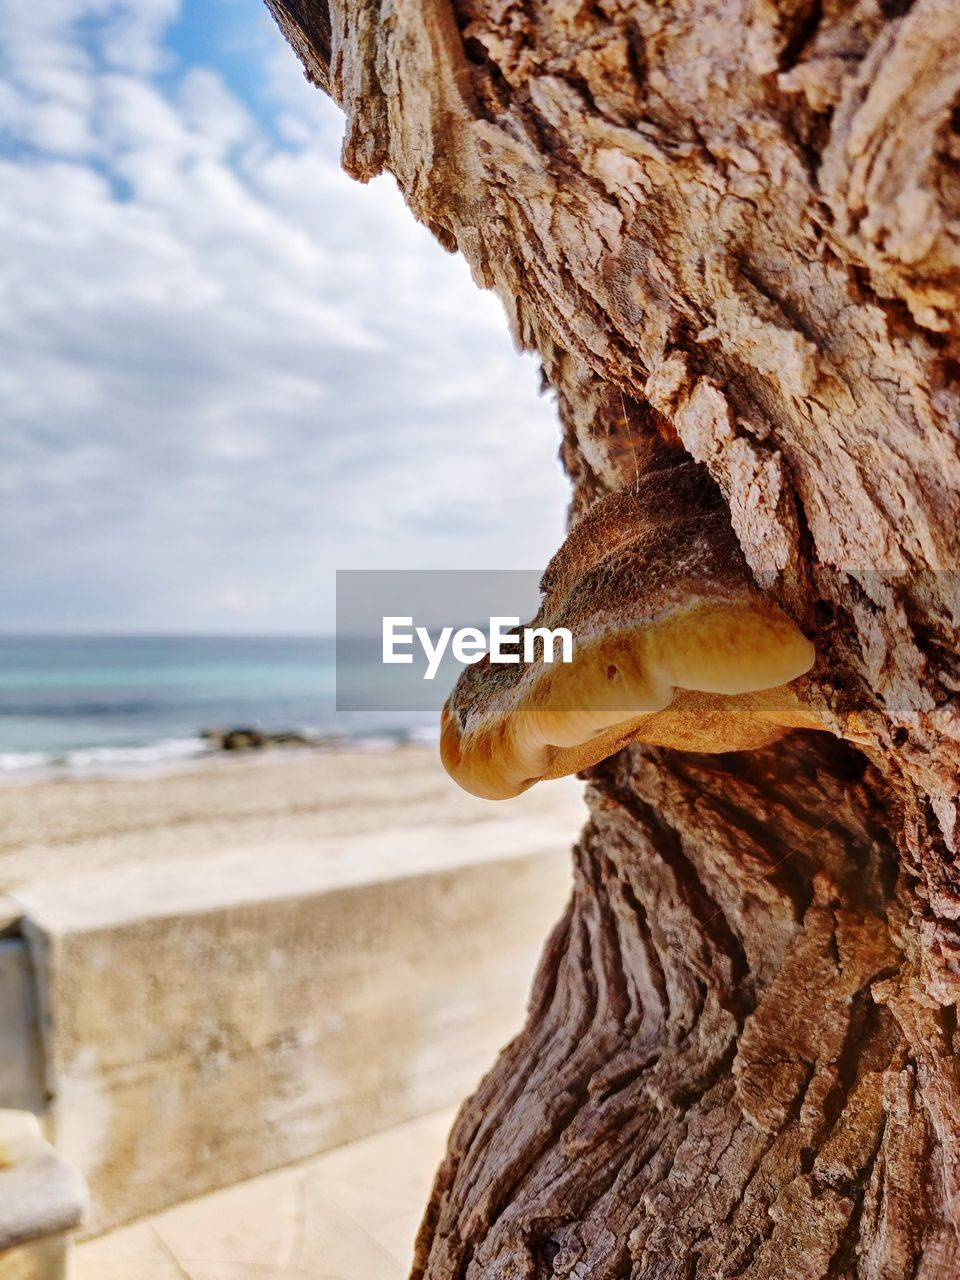 nature, sea, beauty in nature, focus on foreground, water, close-up, no people, day, animal wildlife, animal, sky, one animal, tree trunk, textured, trunk, beach, land, tree, animal themes, outdoors